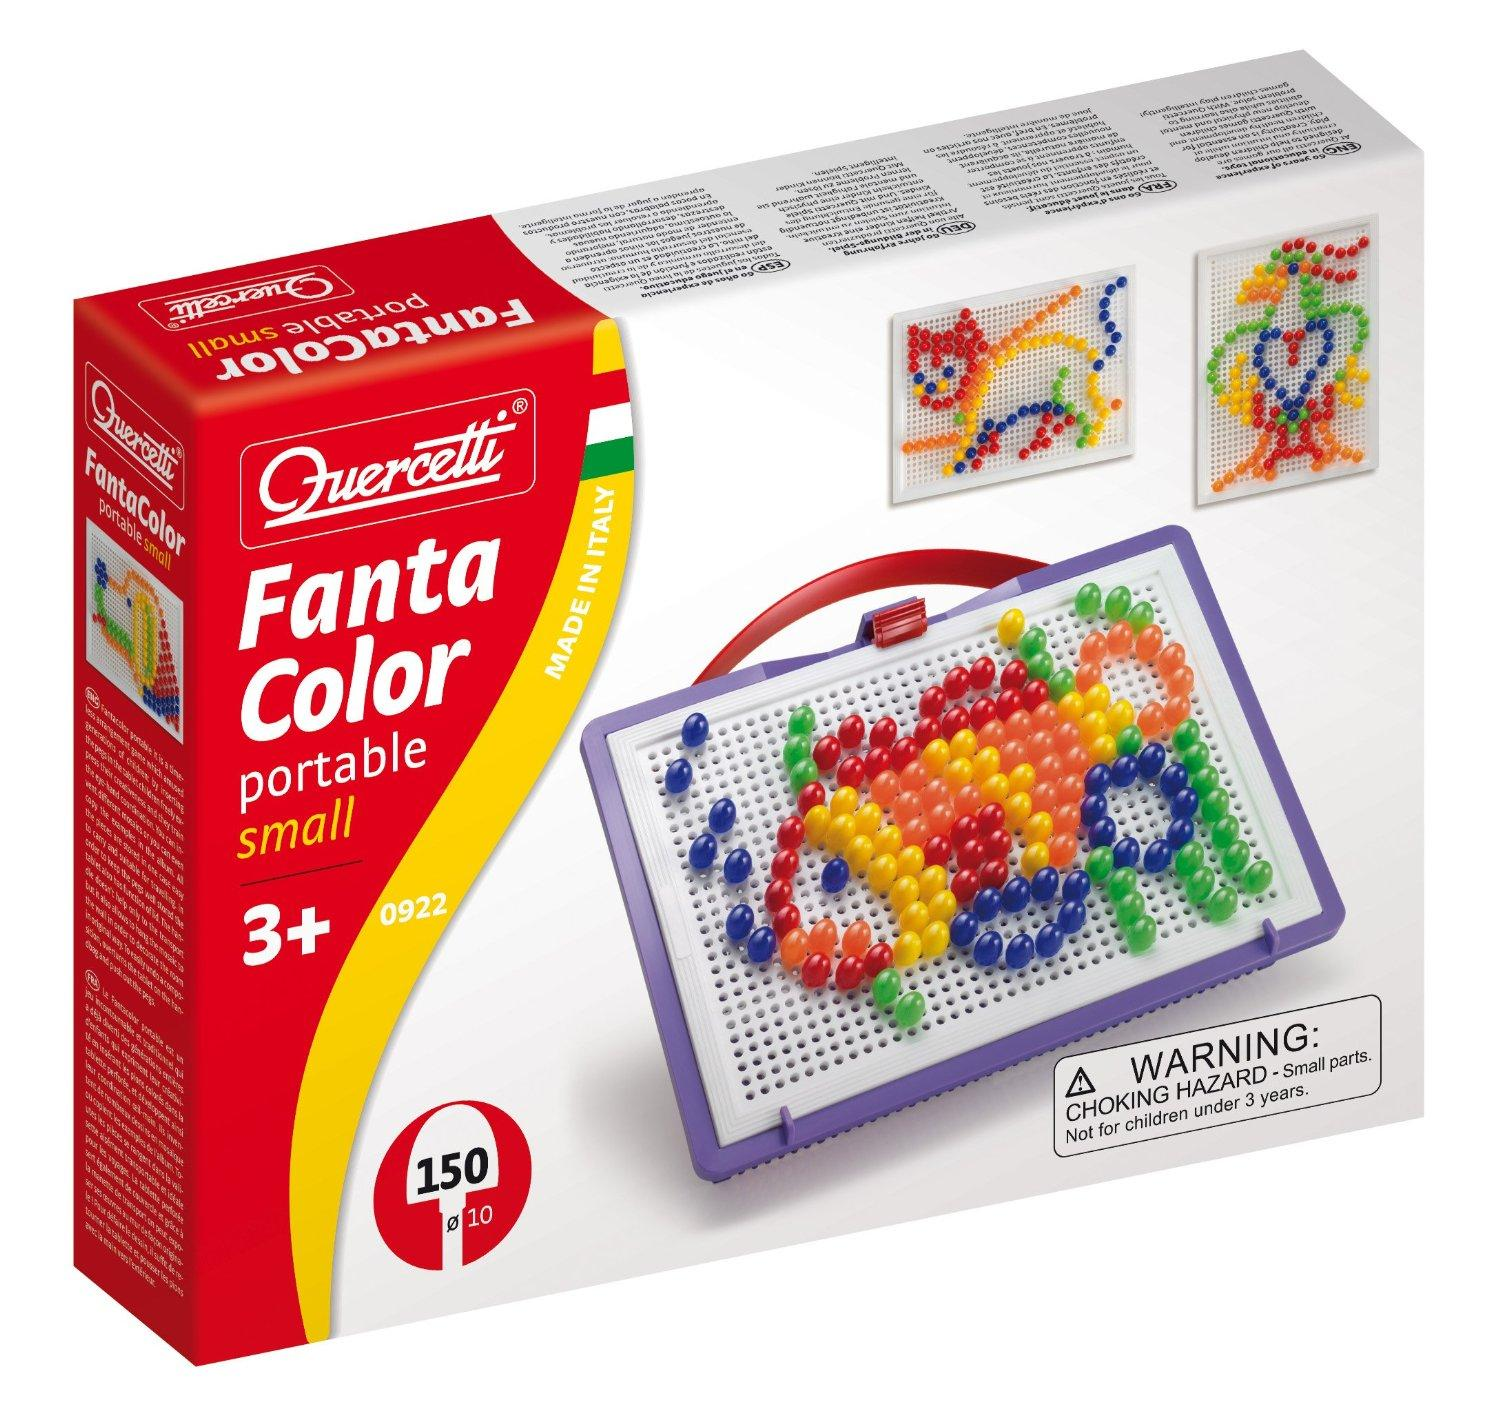 Fantacolor portable small 150τεμ (0922)